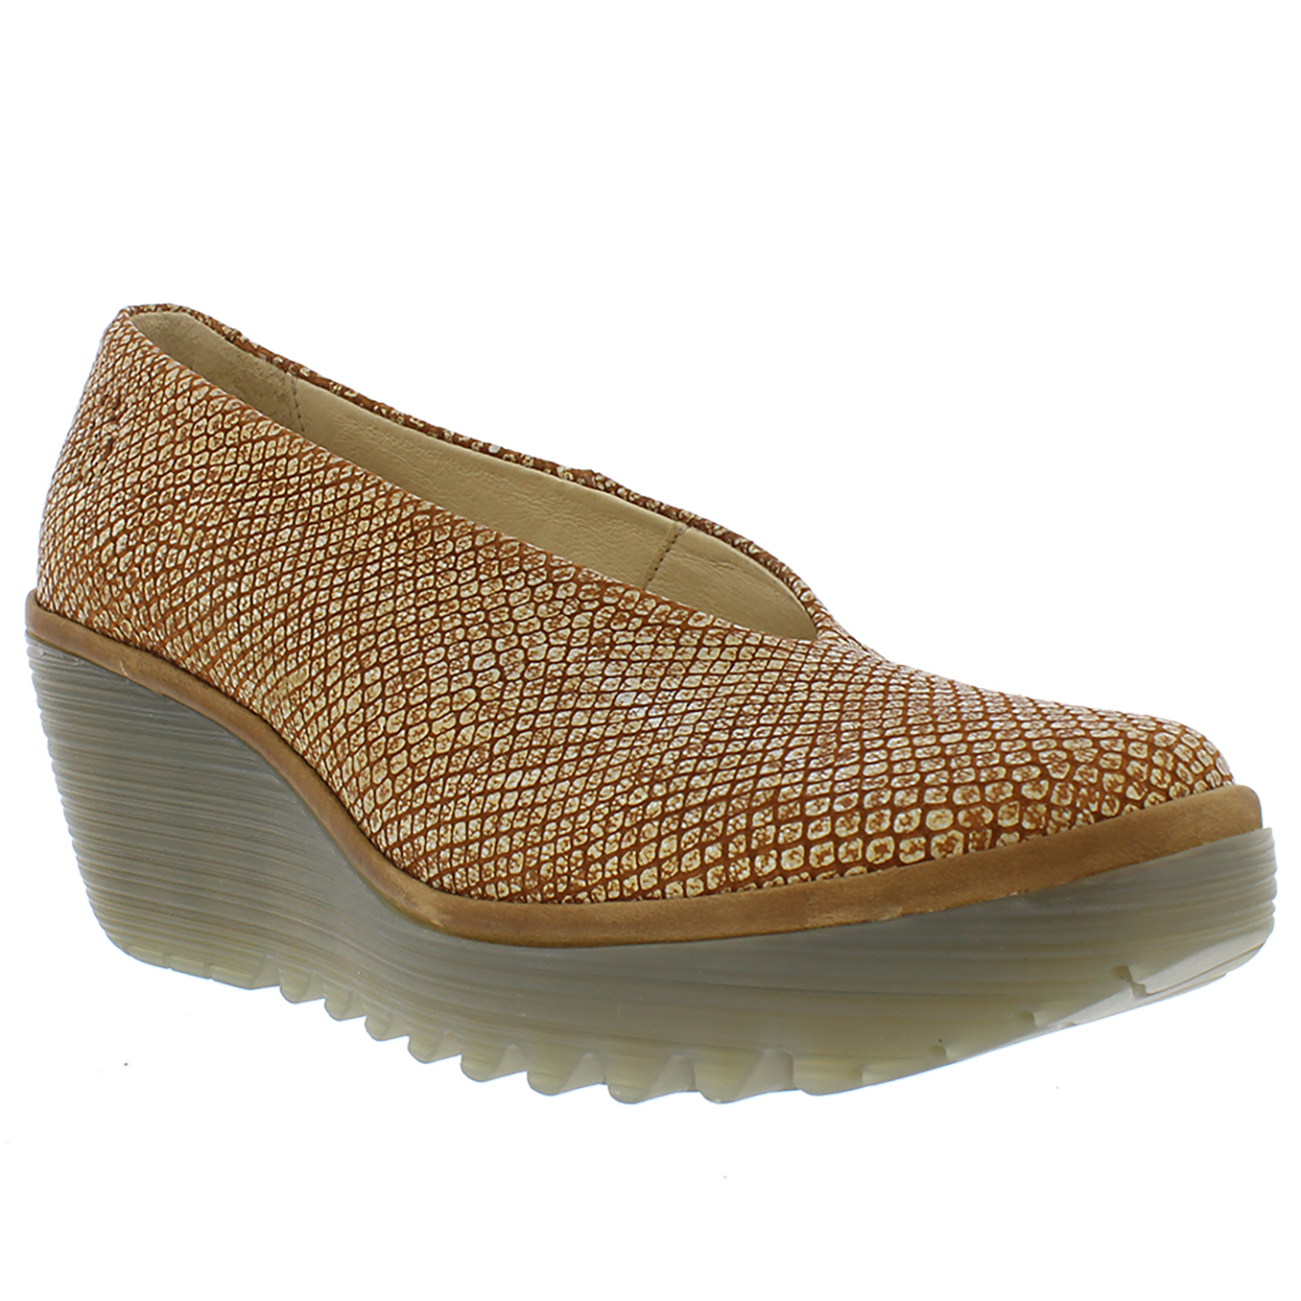 26a204c51f9ea Womens Fly London Yaz Palm Rug Leather Closed Toe Work Office Wedge Shoes  UK 3-9